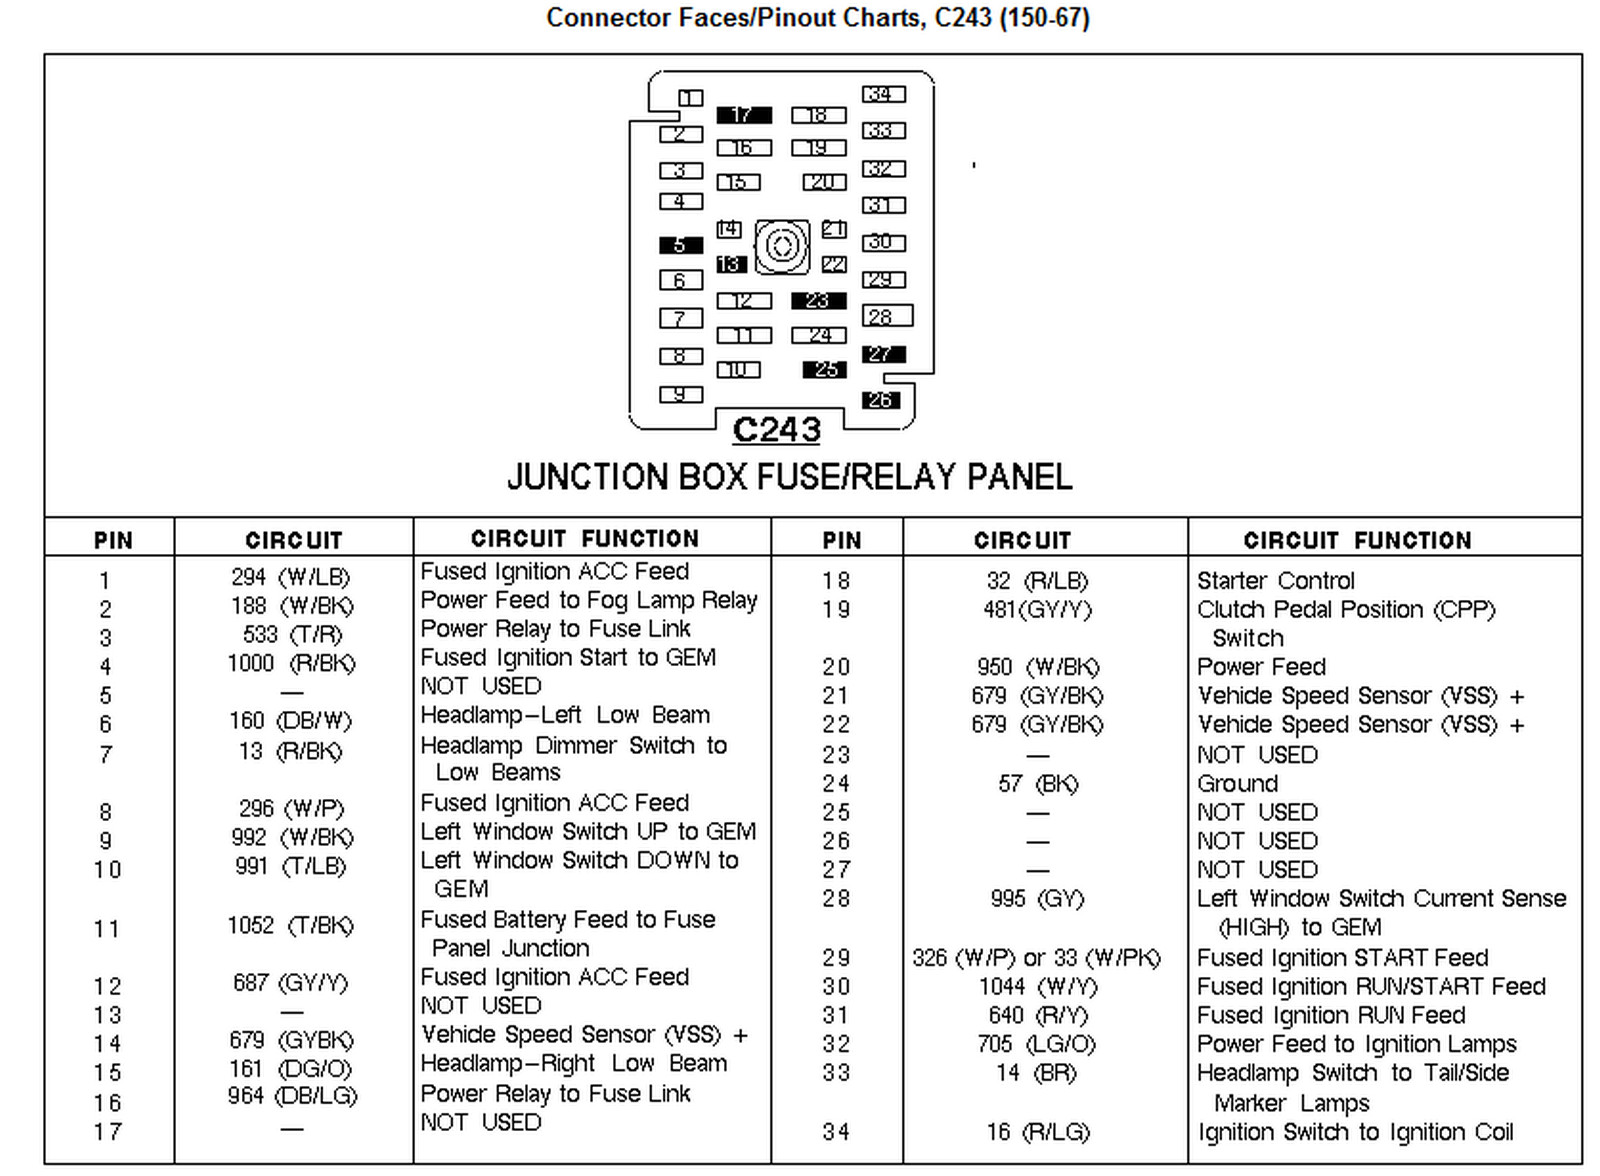 1998 f250 fuse diagram ford f 150 fuse box 4 6 1998 wiring diagrams instruction 1987 Ford 150 at aneh.co